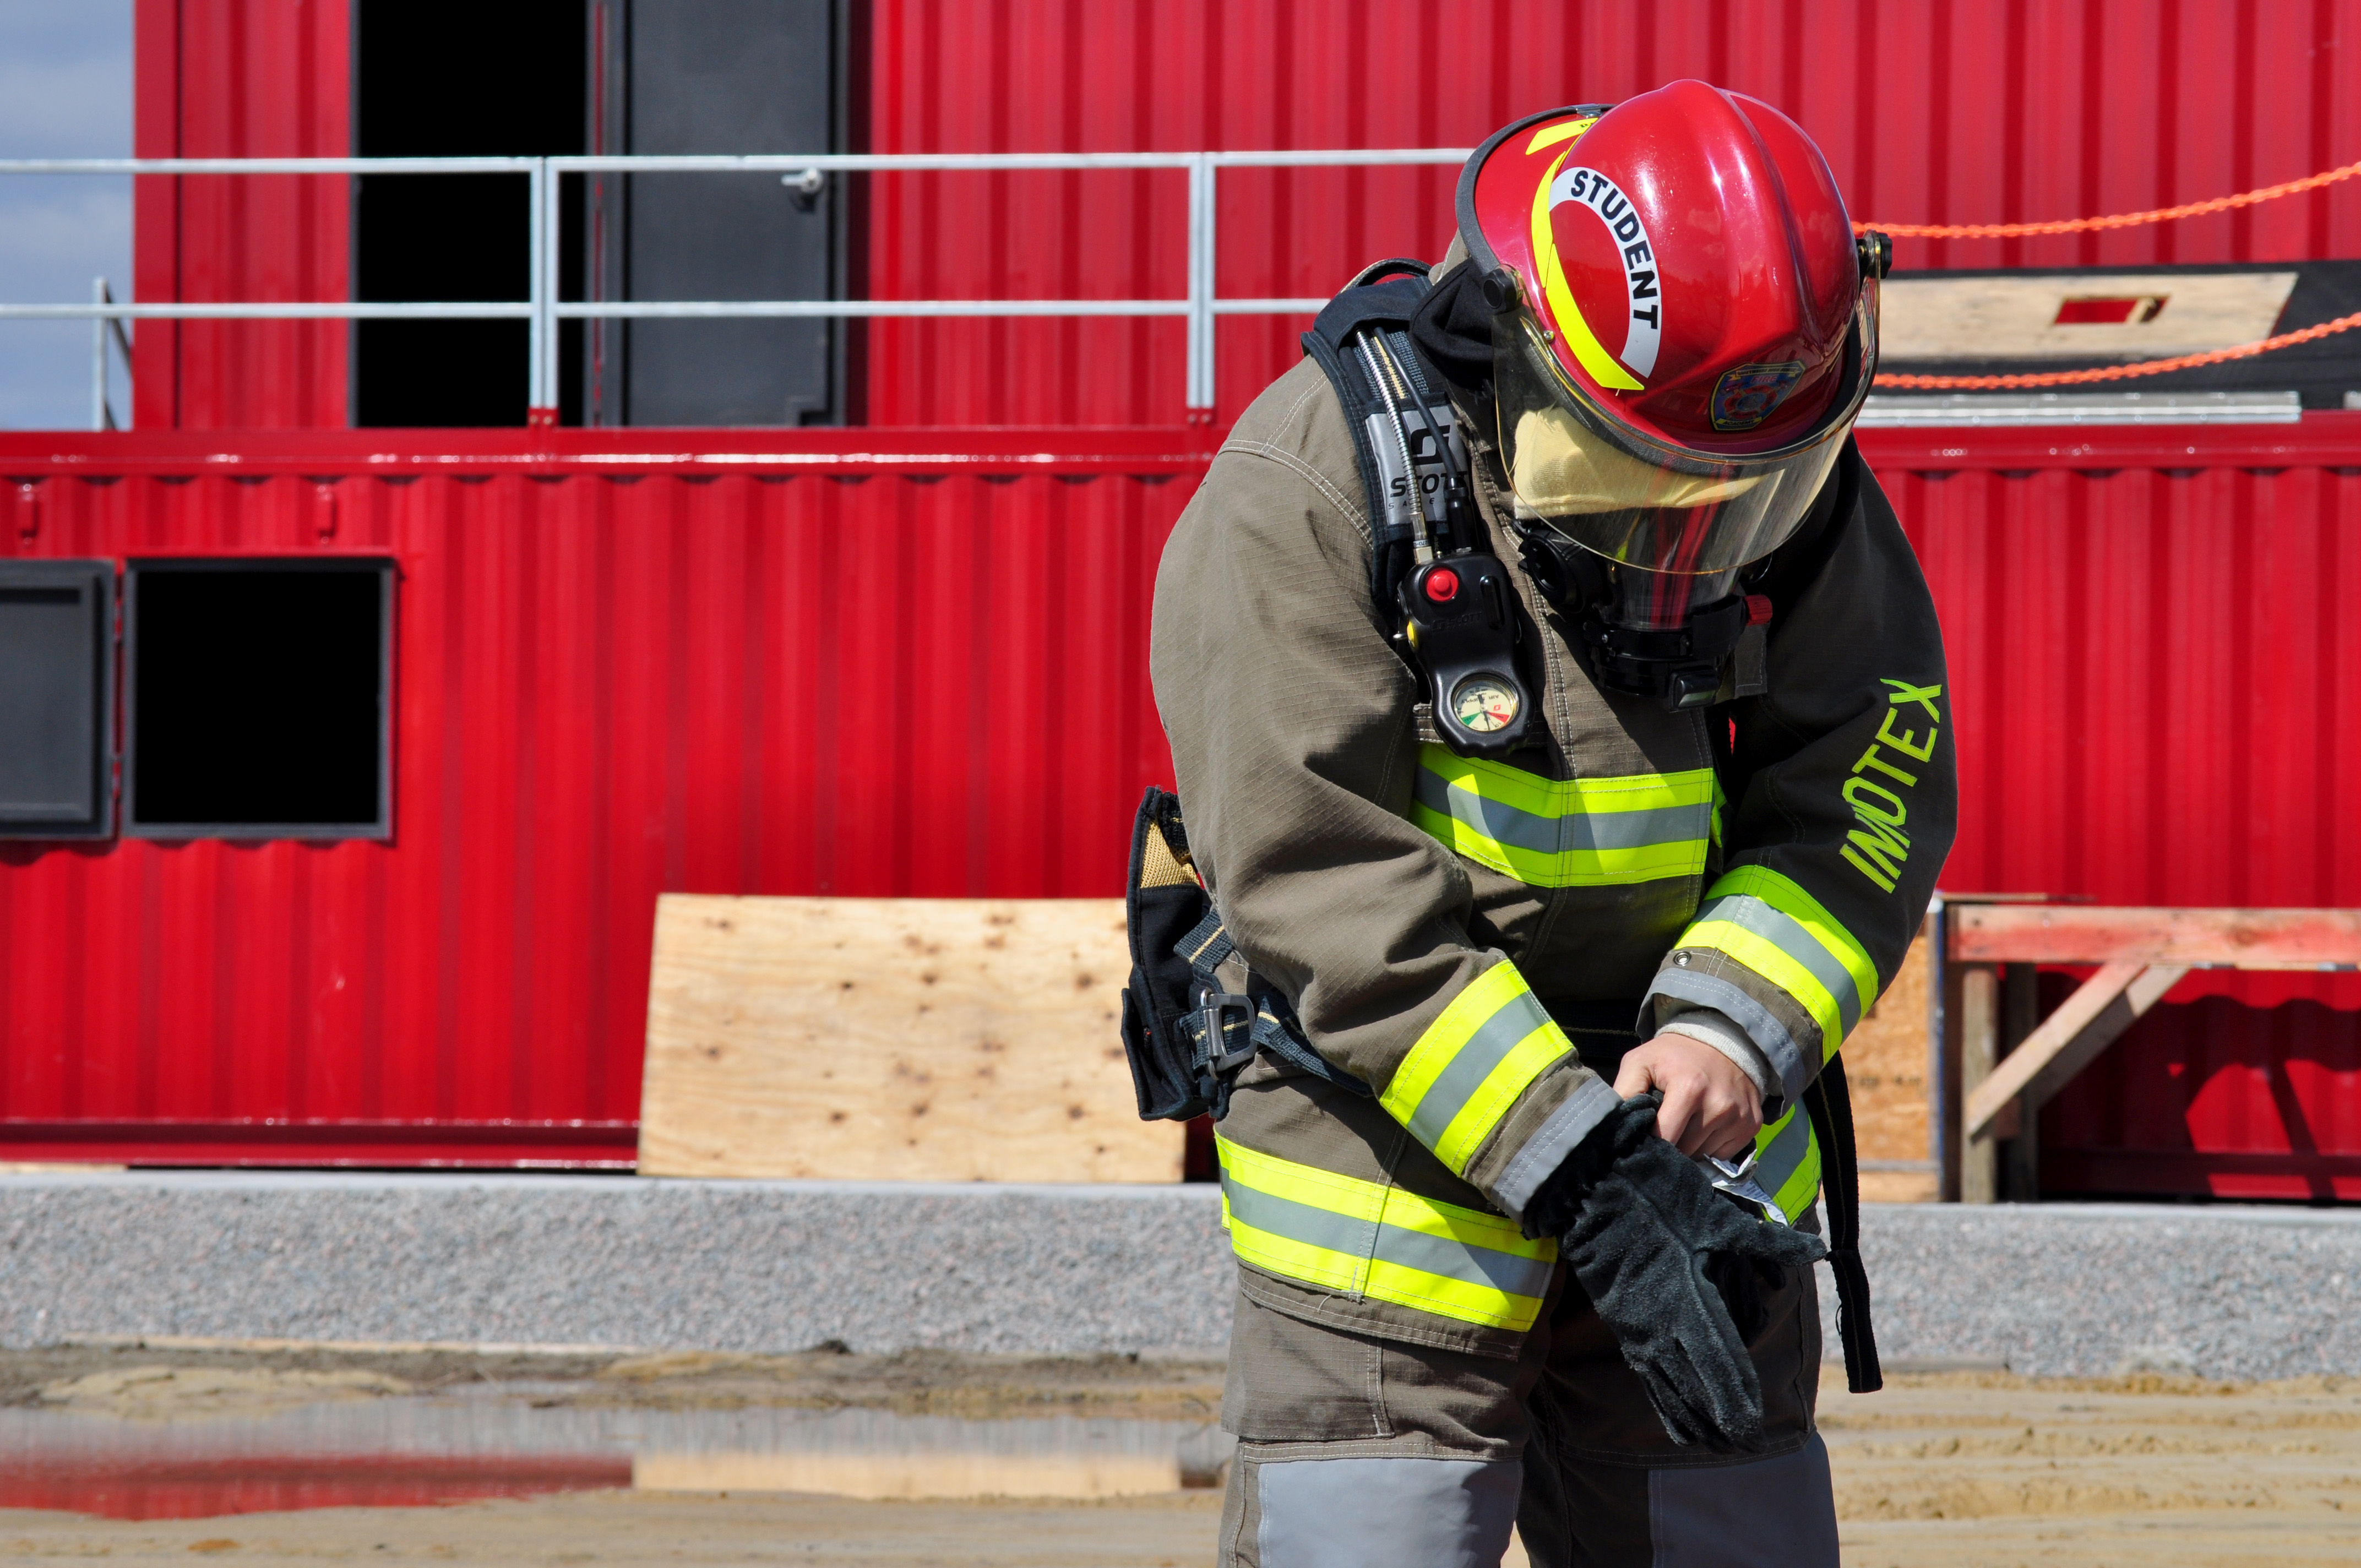 A student firefighter stands in front of a red training area.